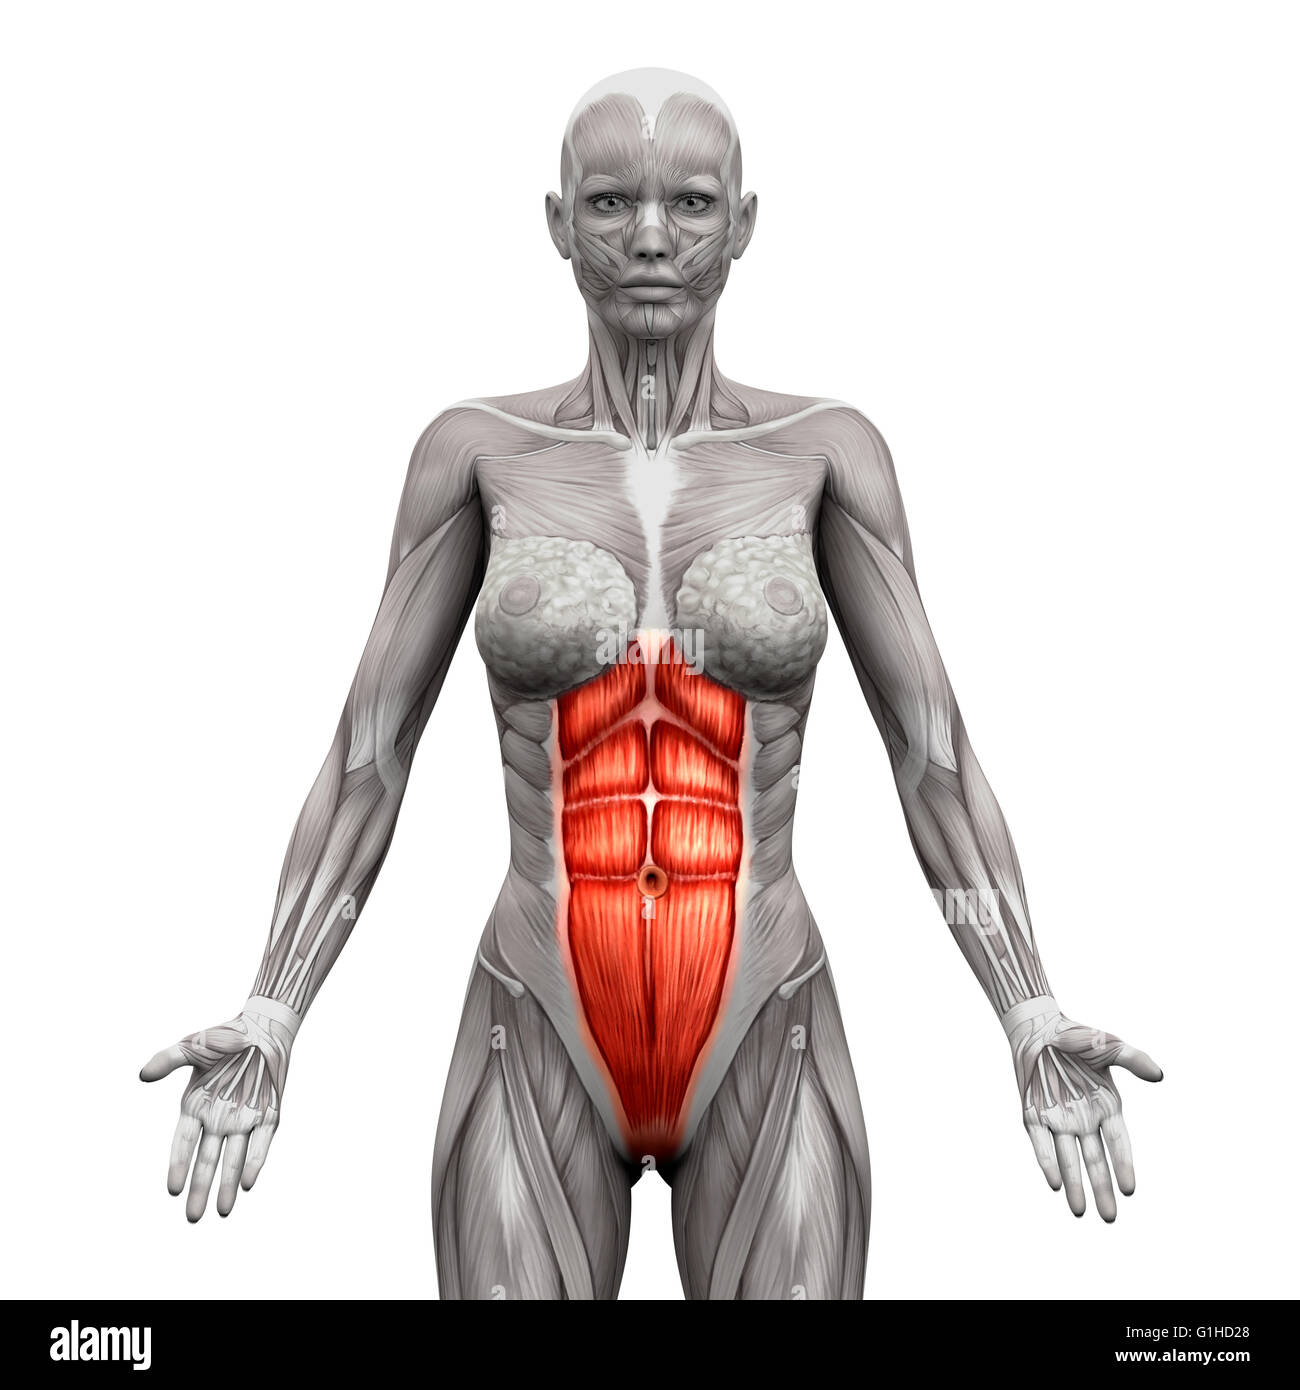 Rectus Abdominis Muscle Stock Photos Rectus Abdominis Muscle Stock